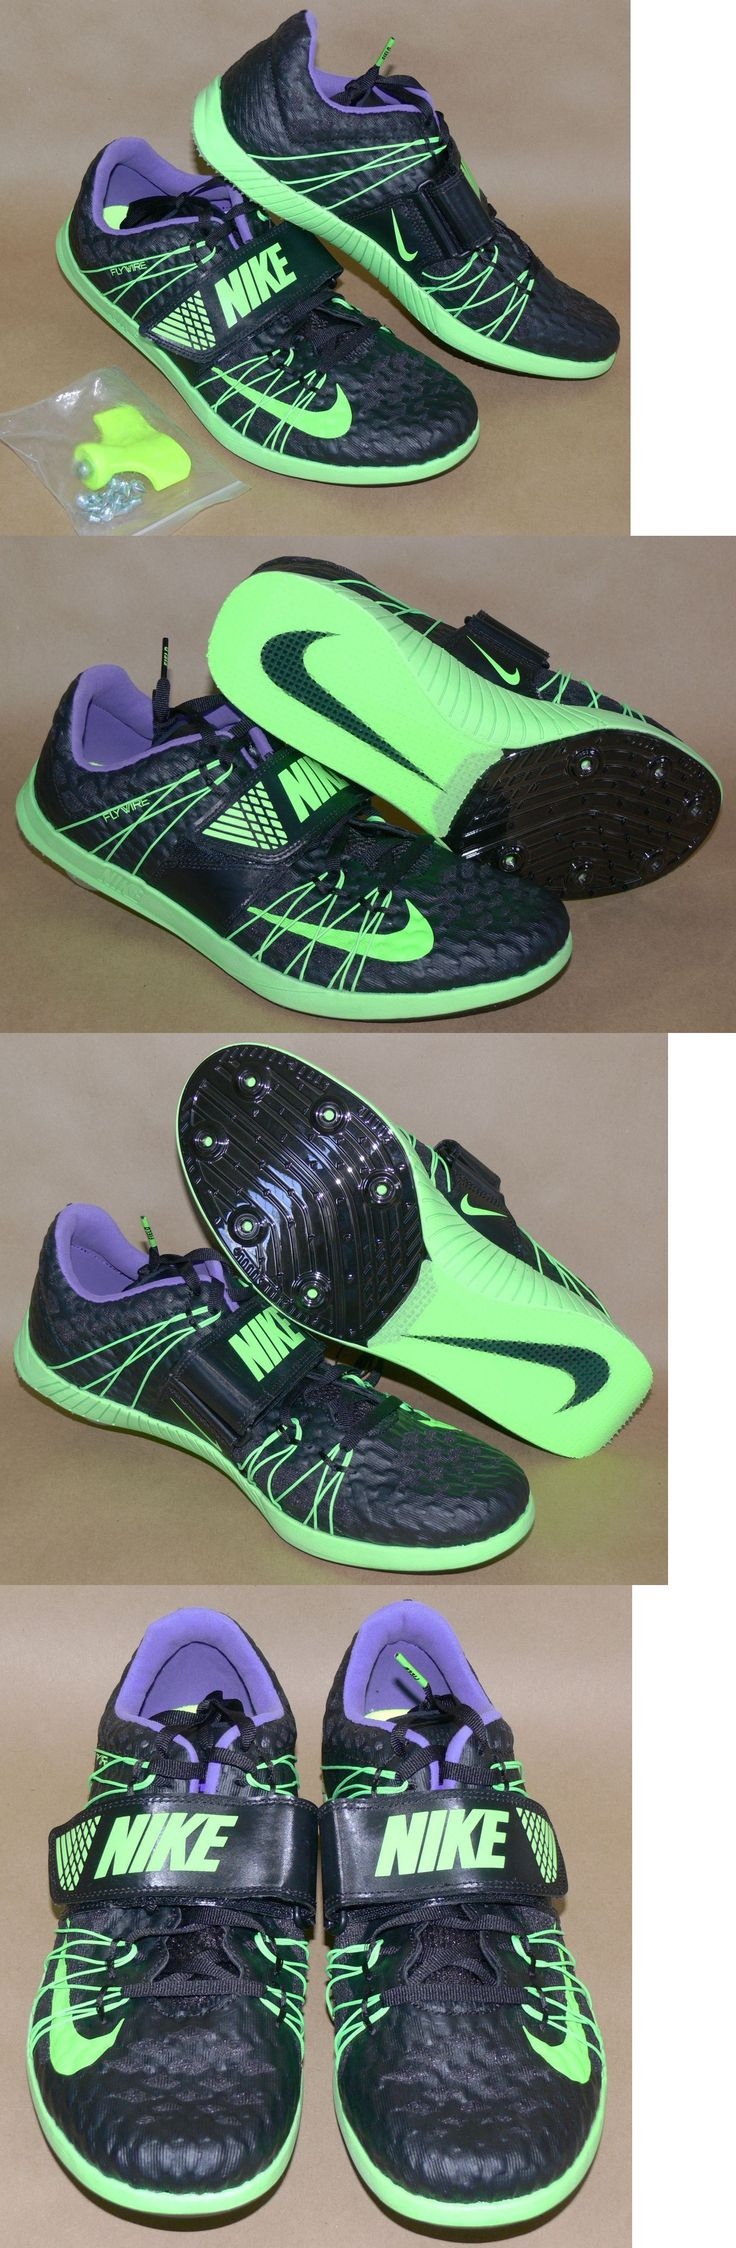 Track and Field 106981: Nike Triple Jump Elite Track Cleats, New In Box! Size Men S 8.5 Women S 10 -> BUY IT NOW ONLY: $42.99 on eBay!